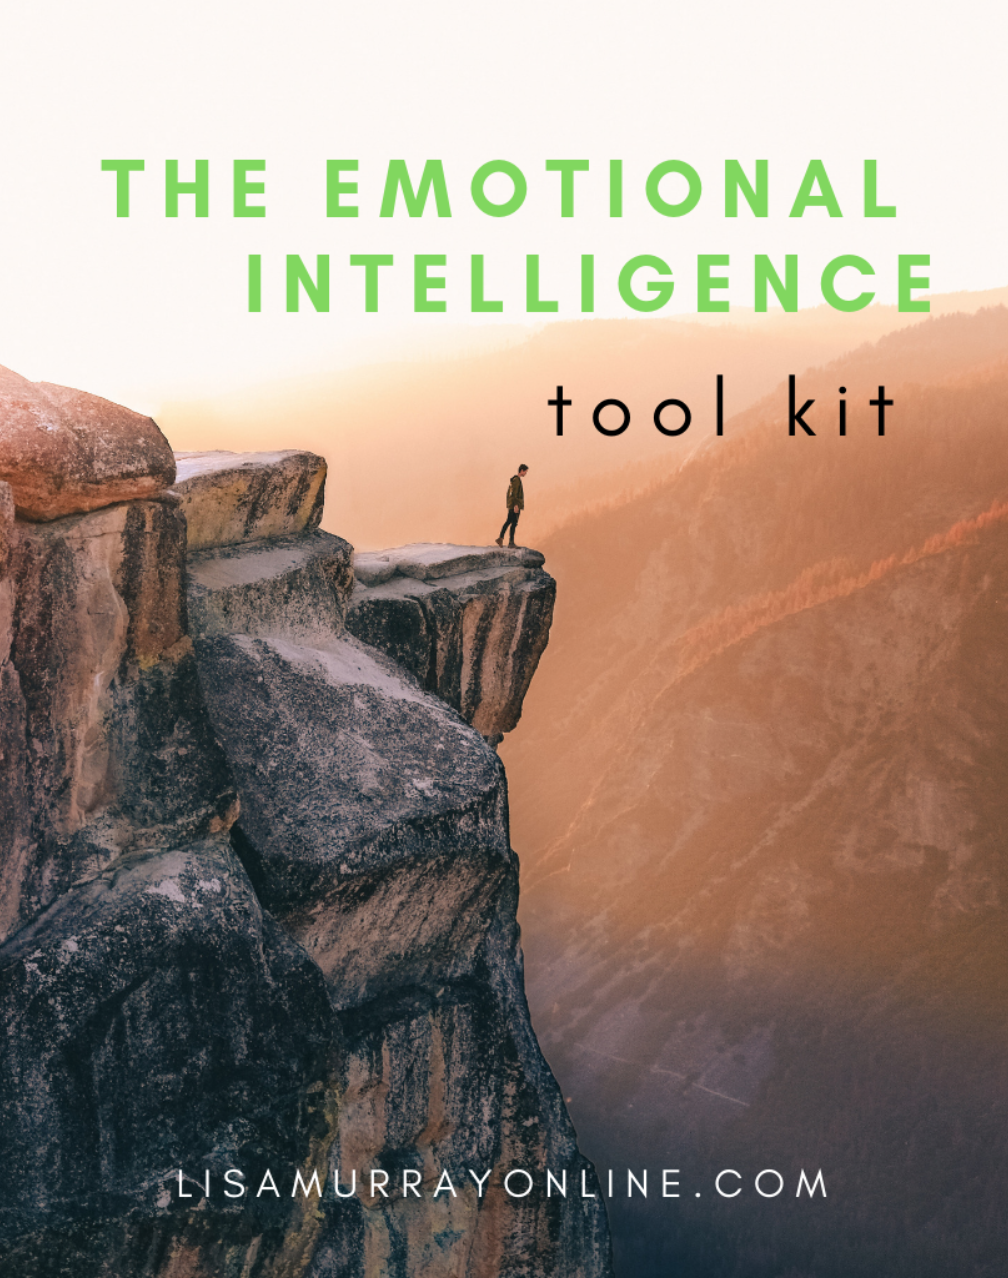 Free gifts - If you struggle to feel, name, or work through your emotions effectively, I've created several powerful resources, including my Emotions Chart, Emotional Intelligence Toolkit to help you grow in your emotional wellbeing and equip you to walk well in your life and relationships. They are FREE (along with my ENTIRE resource library) when you subscribe to my weekly newsletter and will empower and equip you to discover the spiritual, emotional, and relational healing and wellbeing you've always desired!